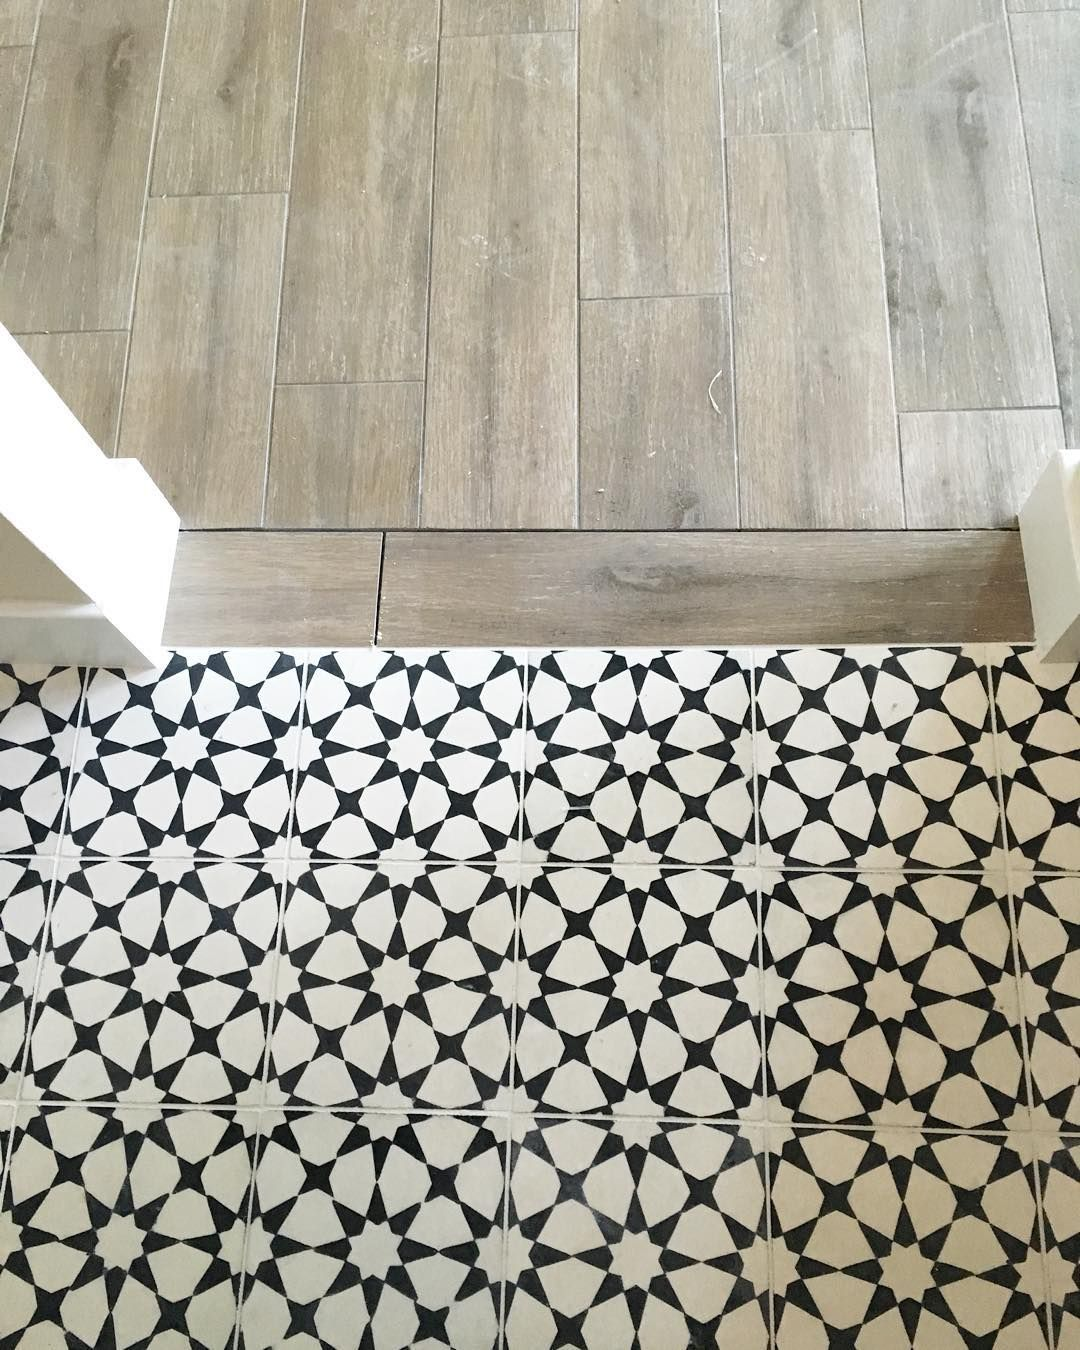 Vanessa matsalla wood to cement tile transition for Tile and hardwood floor